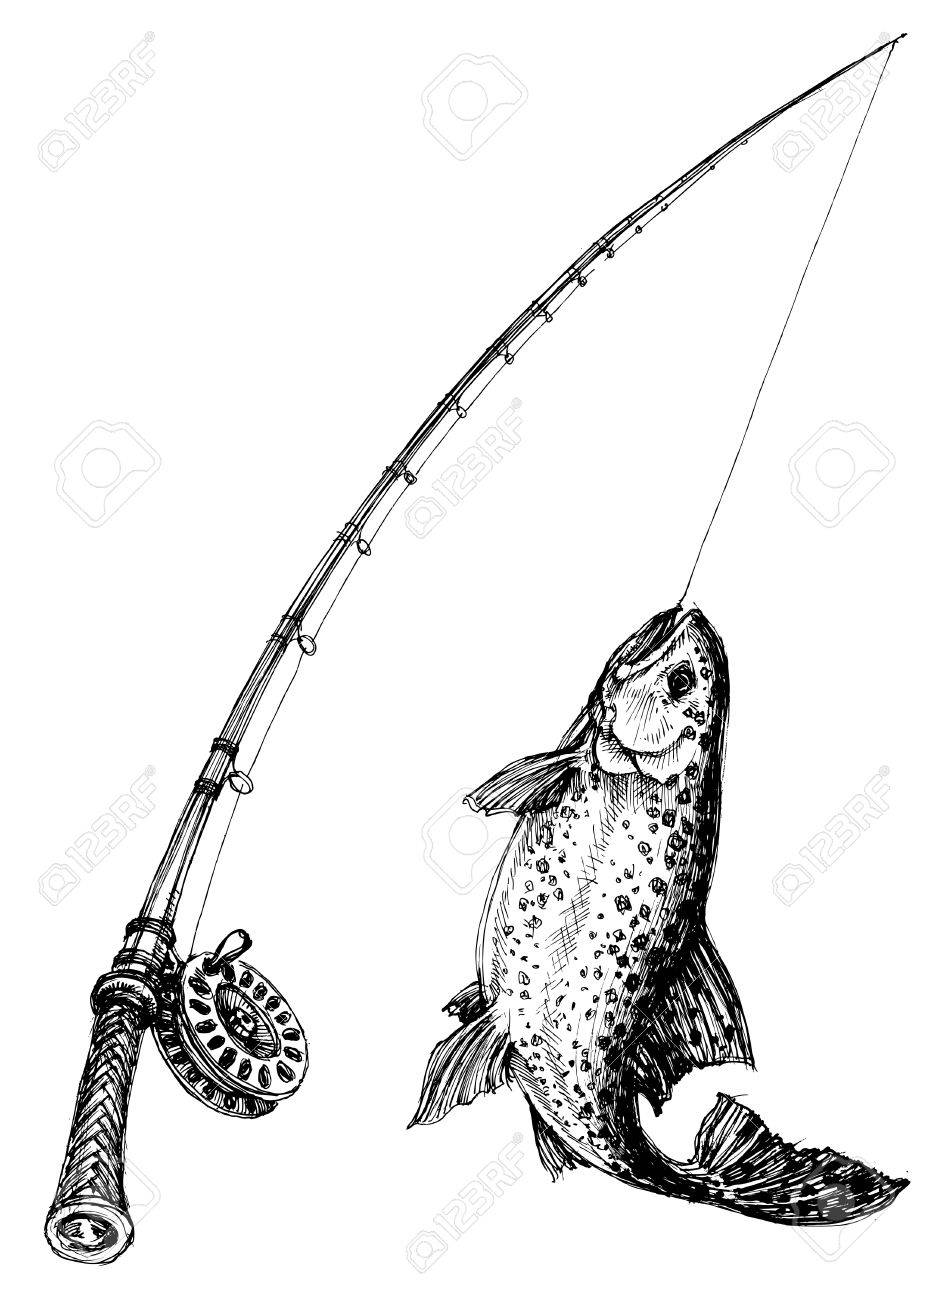 Fishing rod and fish isolated.